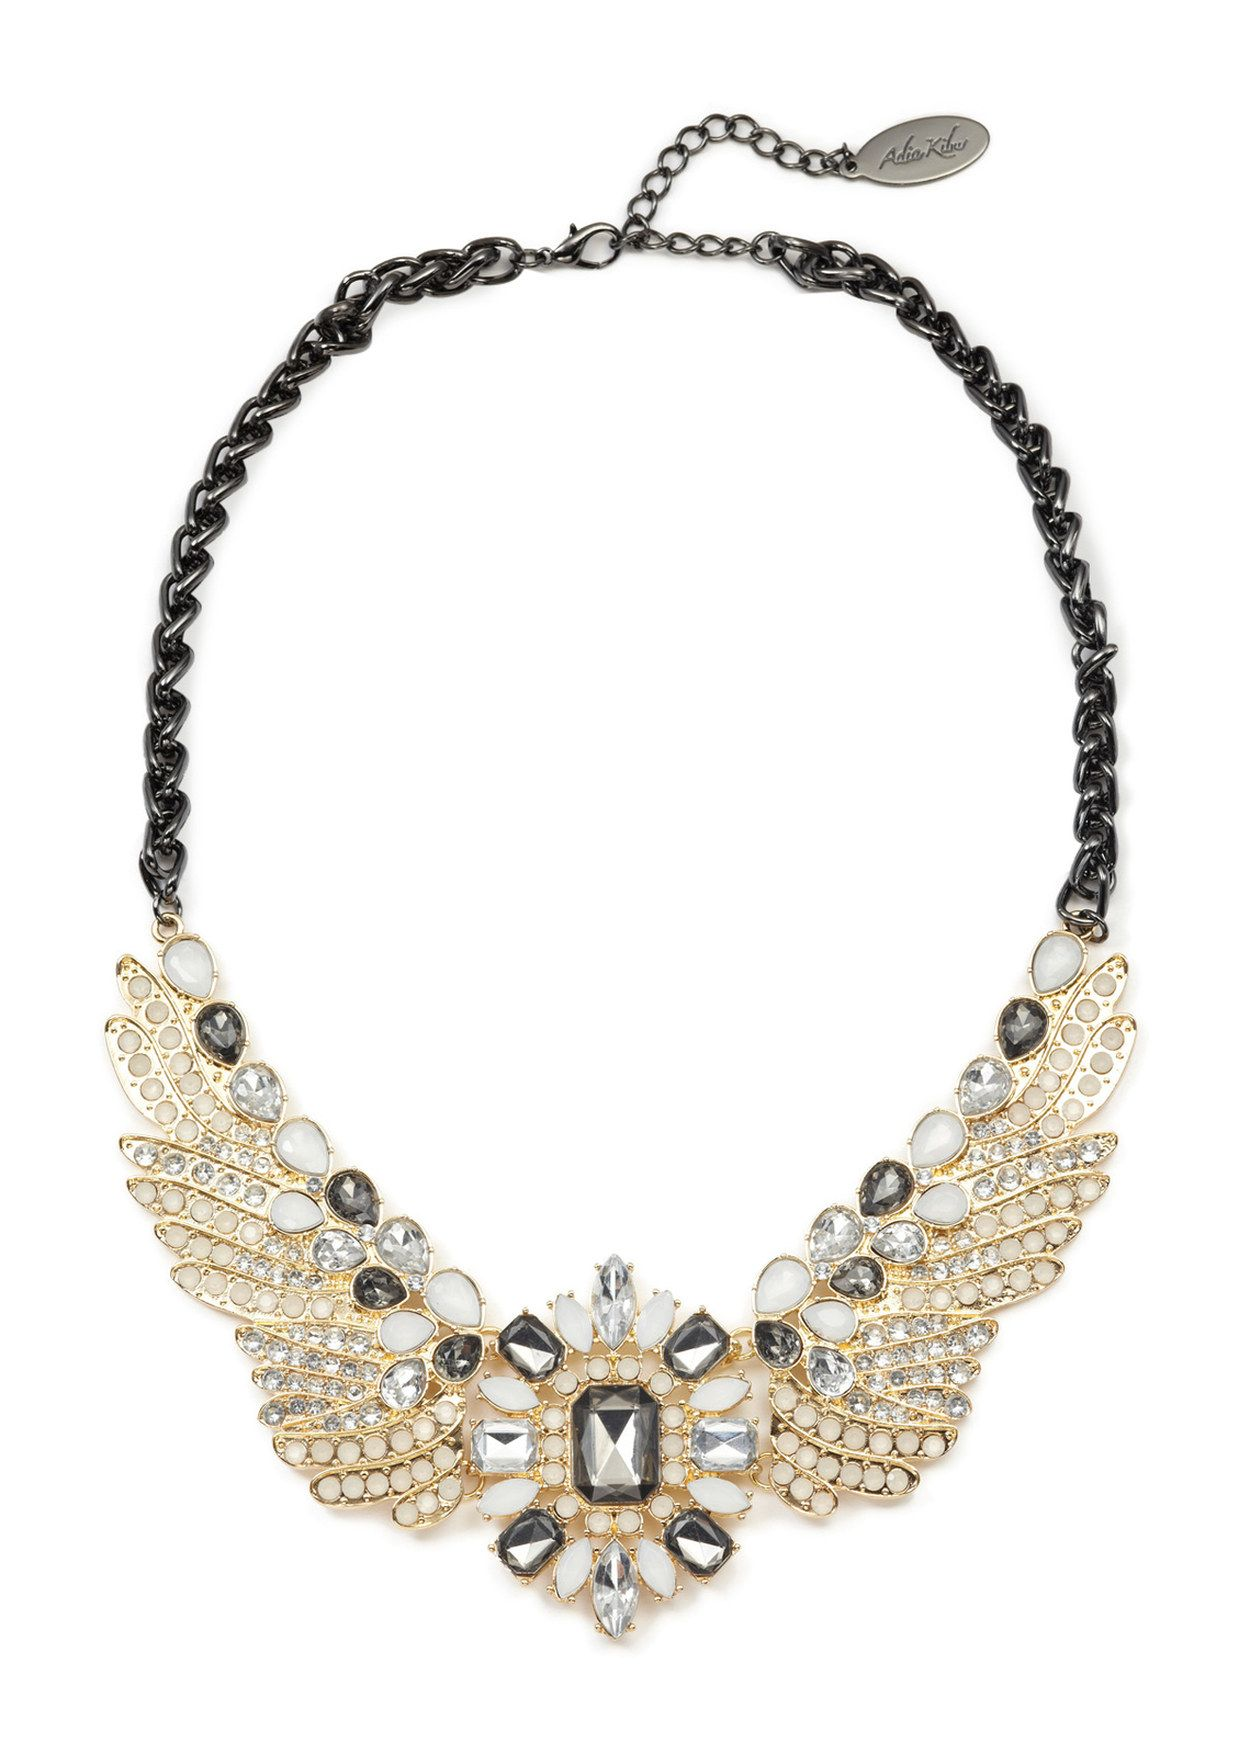 ideeli | ADIA KIBUR Crystal Wings Pendant Chain Necklace